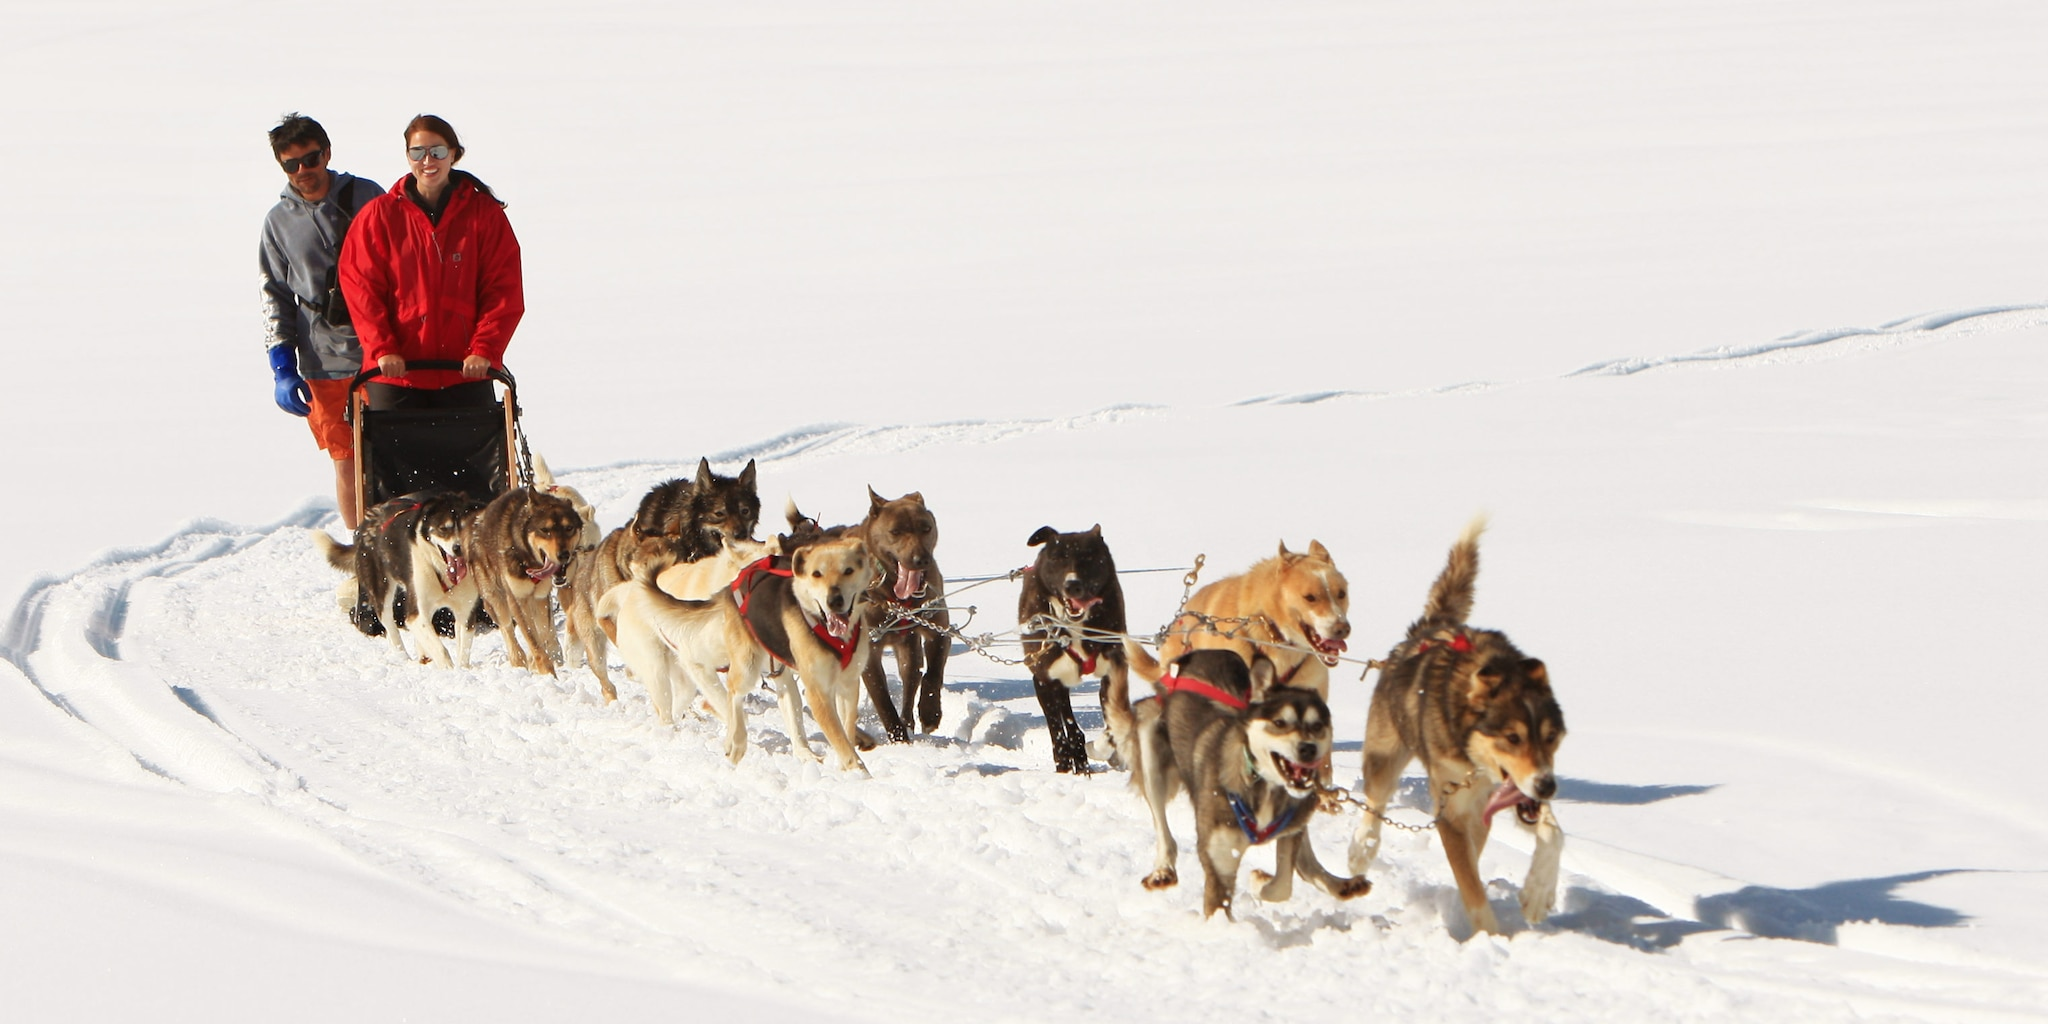 An Iditarod dog sled team dashes through the snow